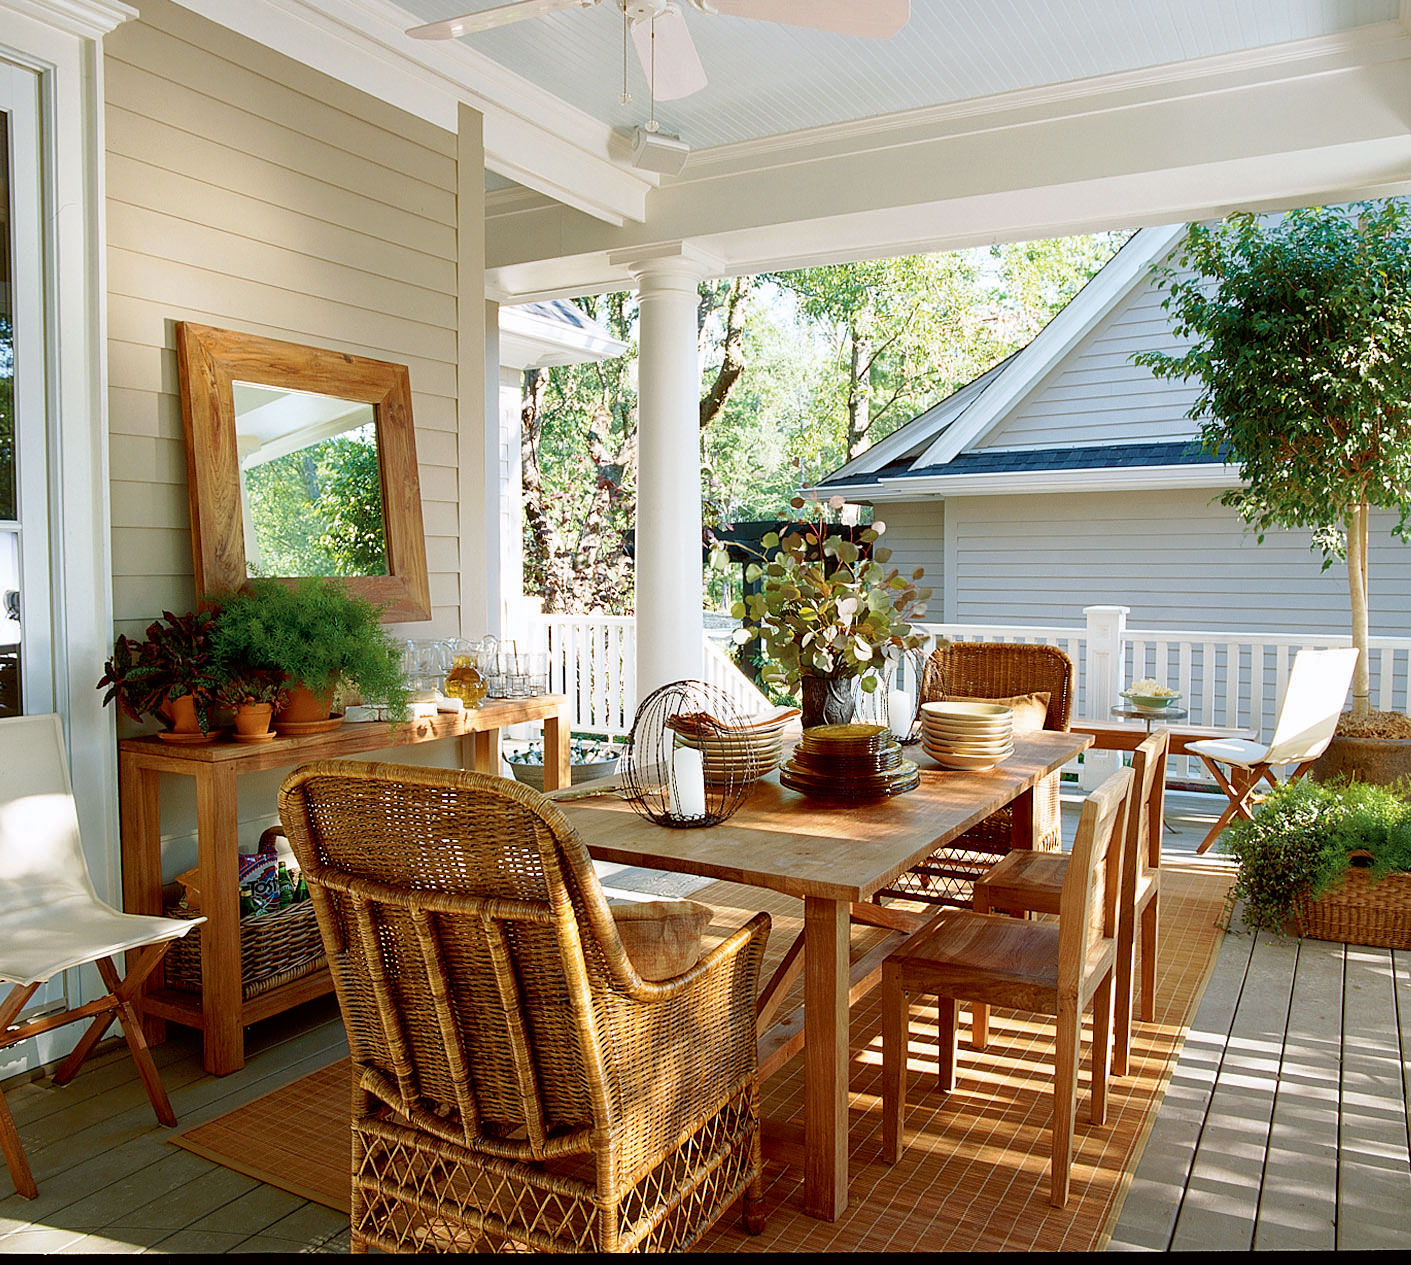 Porch Design Ideas front porch design ideas remodels photos houzz 65 Best Patio Designs For 2017 Ideas For Front Porch And Patio Decorating